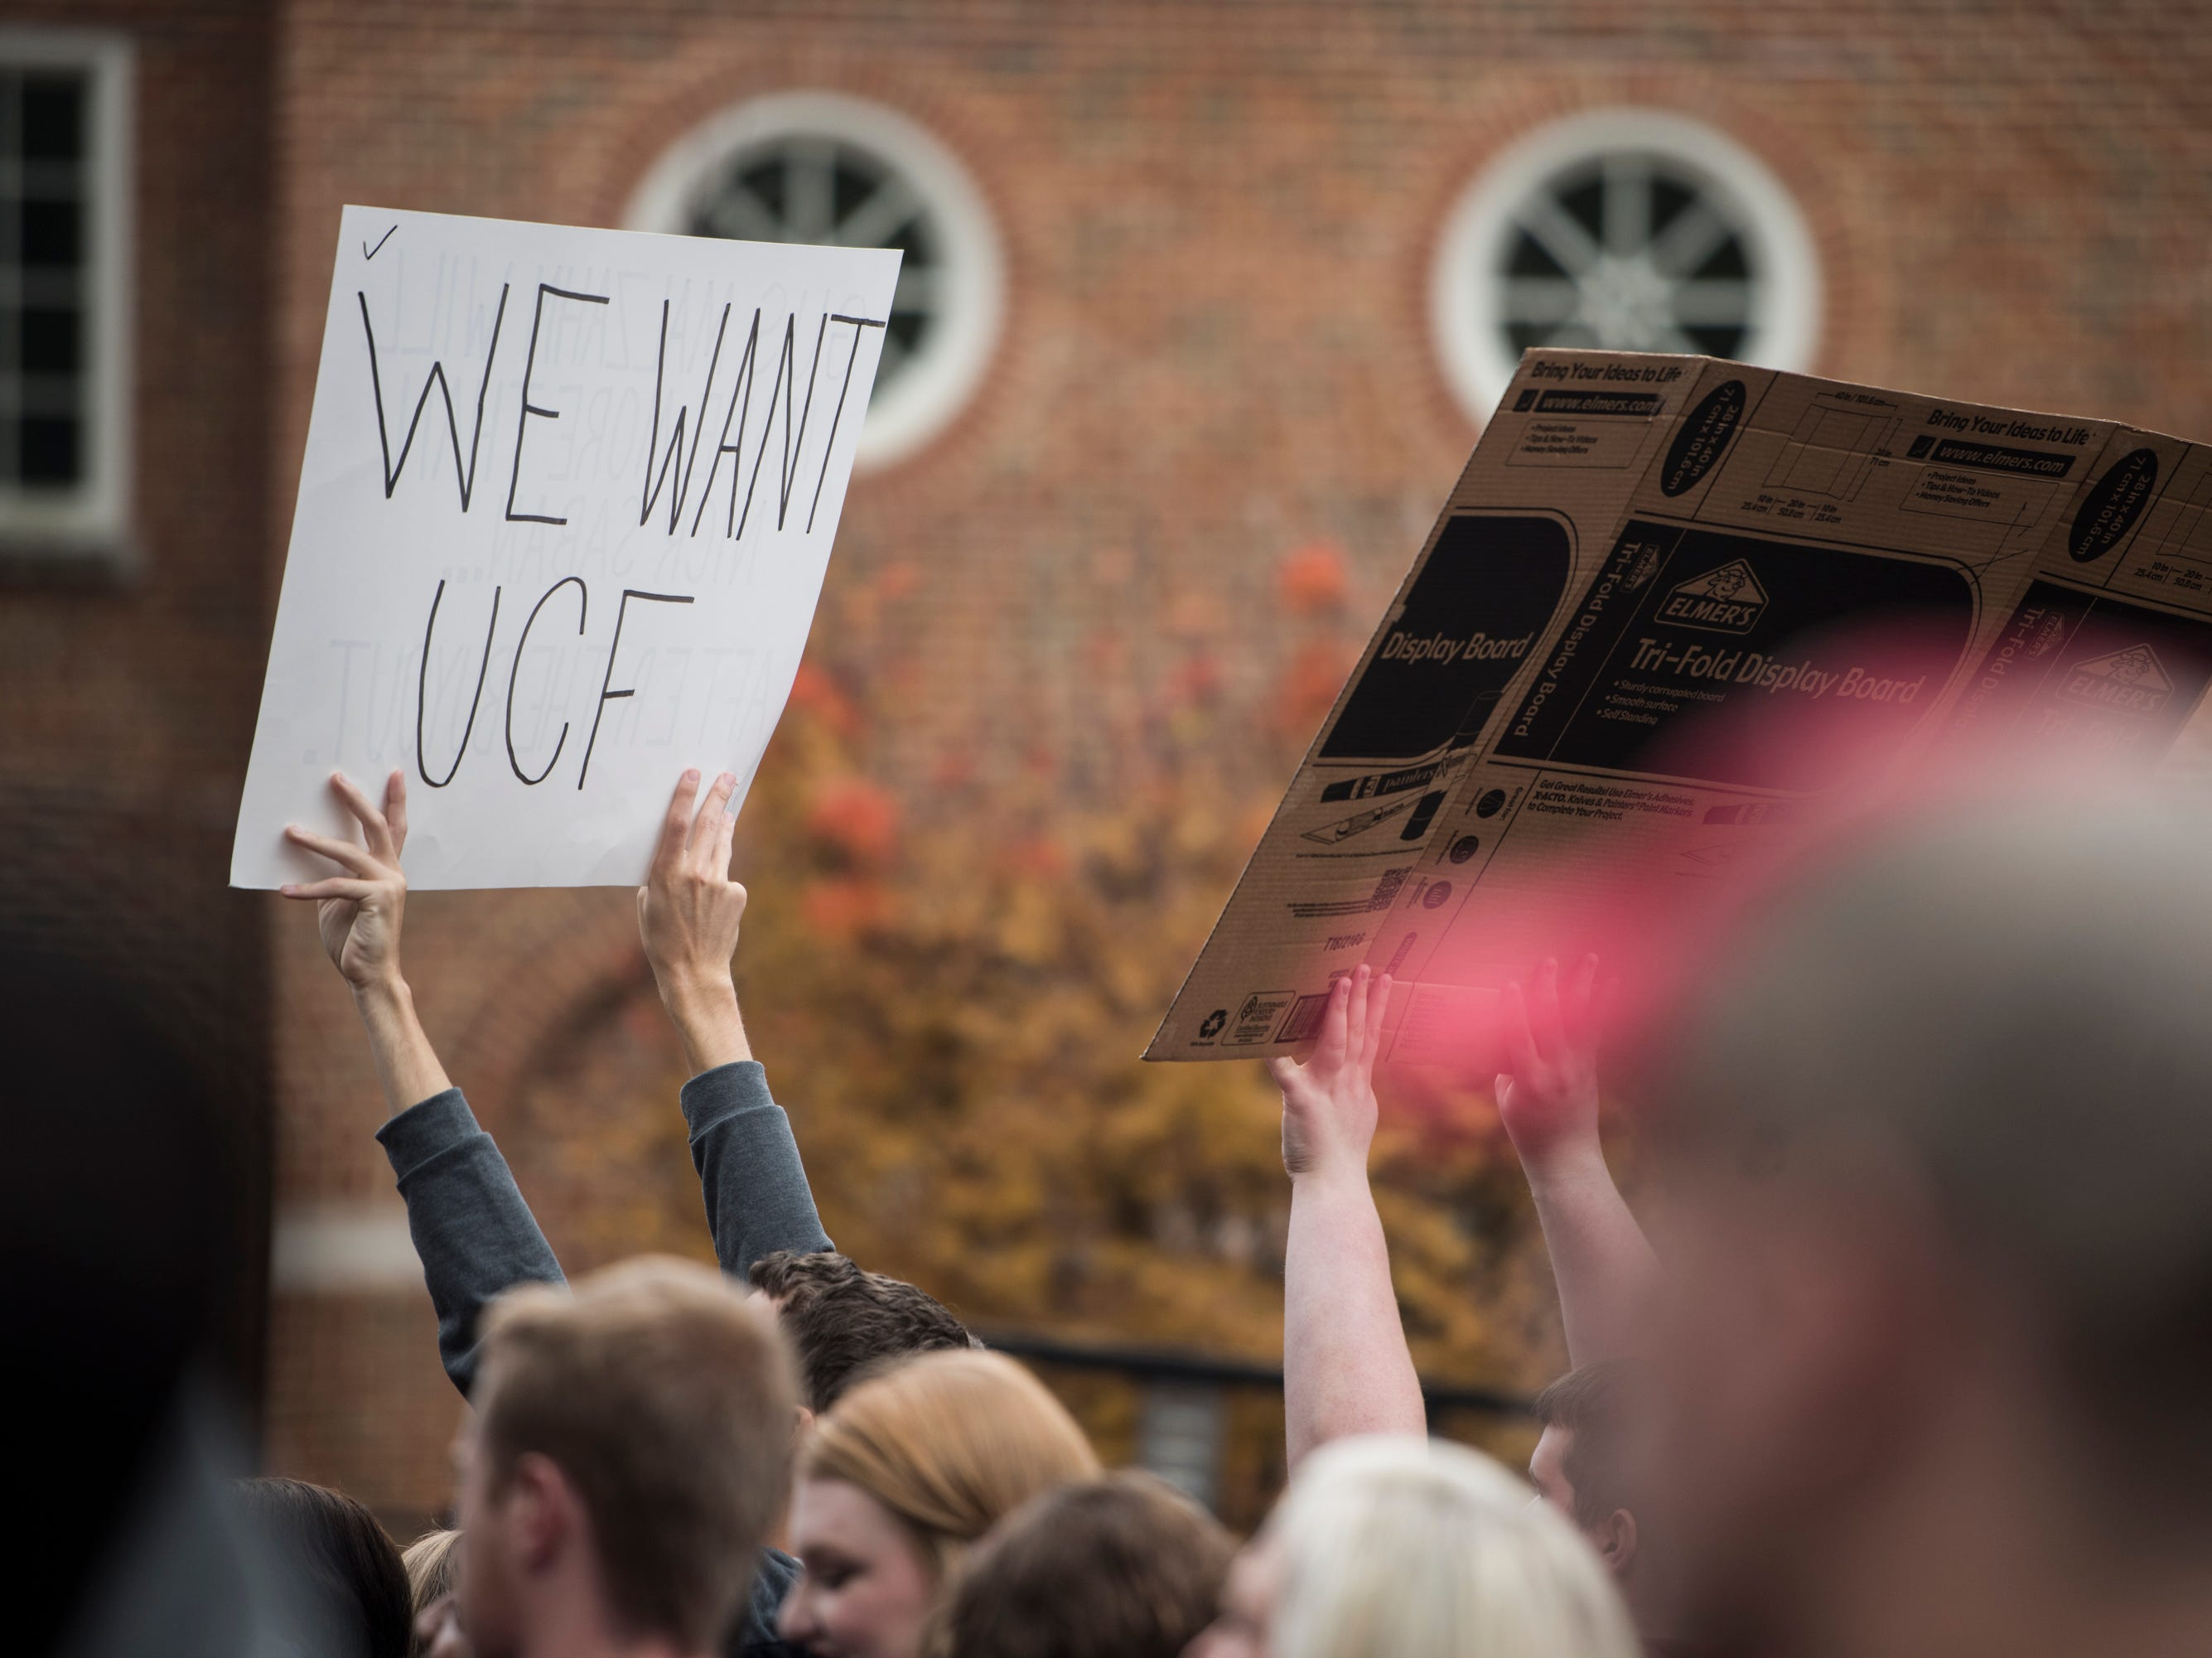 Fans hold up signs at the SEC Nation broadcast set outside Bryant-Denny Stadium in Tuscaloosa, Ala., on Saturday, Nov. 24, 2018.